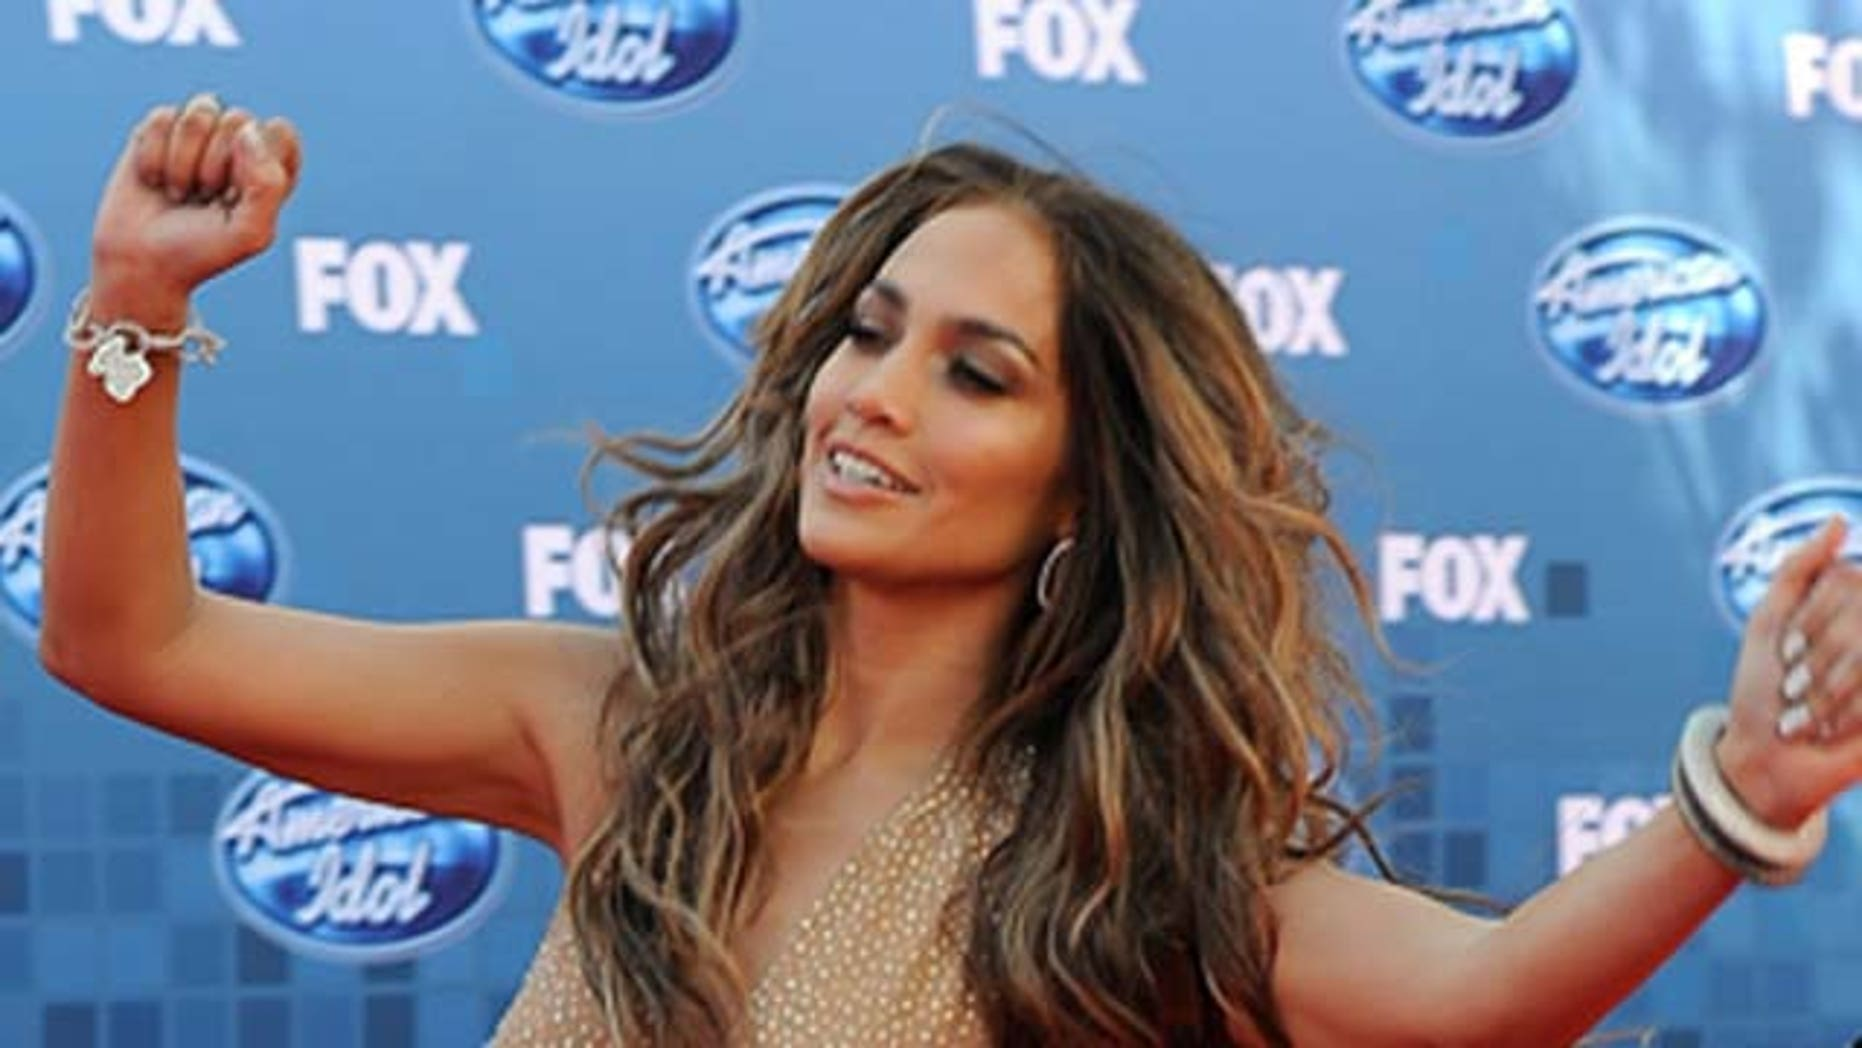 May 25, 2011: Singer/actress Jennifer Lopez arrives at Fox's 'American Idol' season 10 finale results show held at Nokia Theatre LA Live  in Los Angeles, Calif.